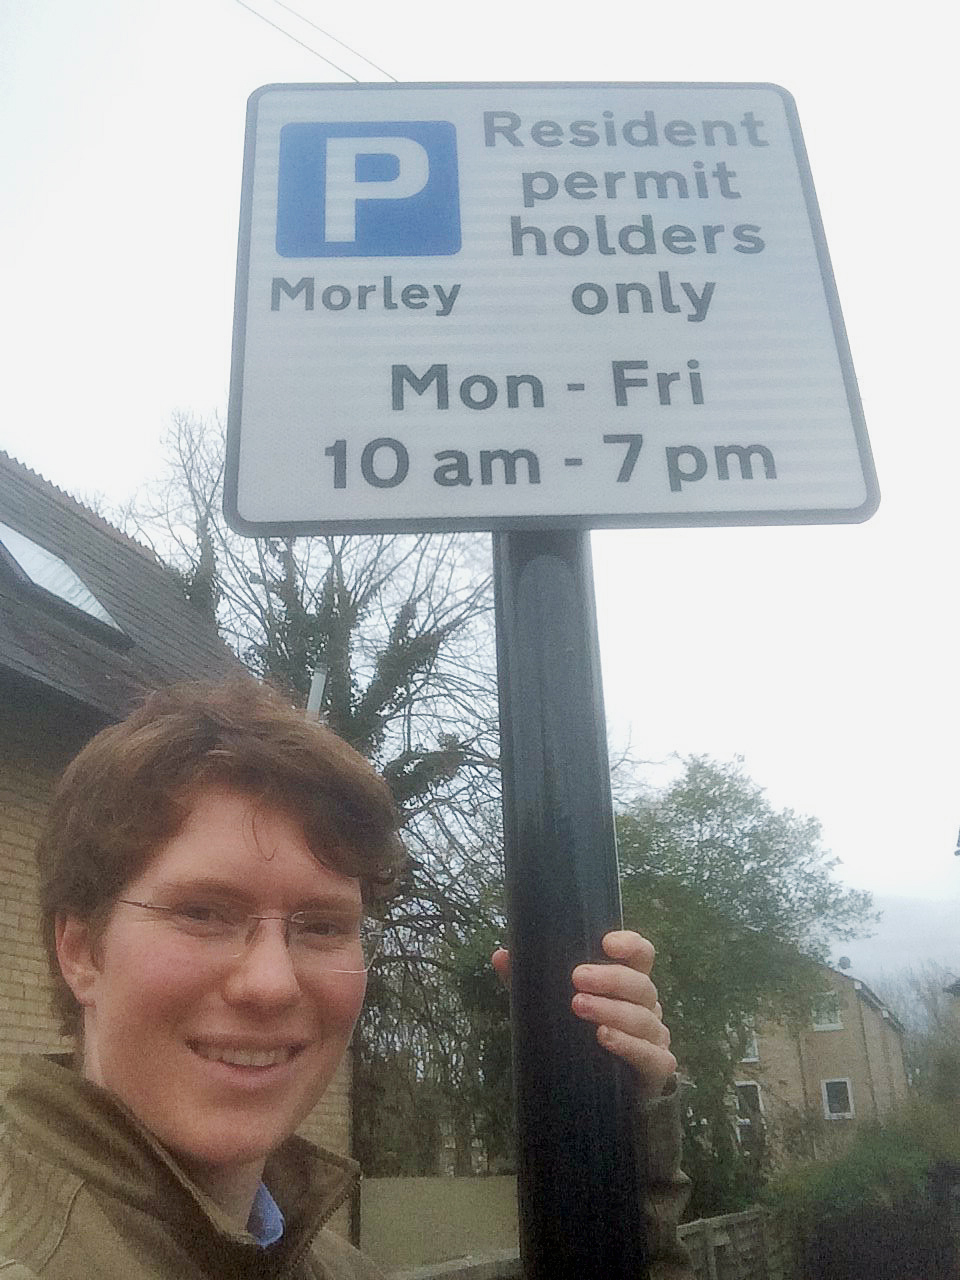 A selfie of a similing person with a signpost, which reads: Residents permit holders only Mon-Fri 10am-7pm, with trees and houses in the background.